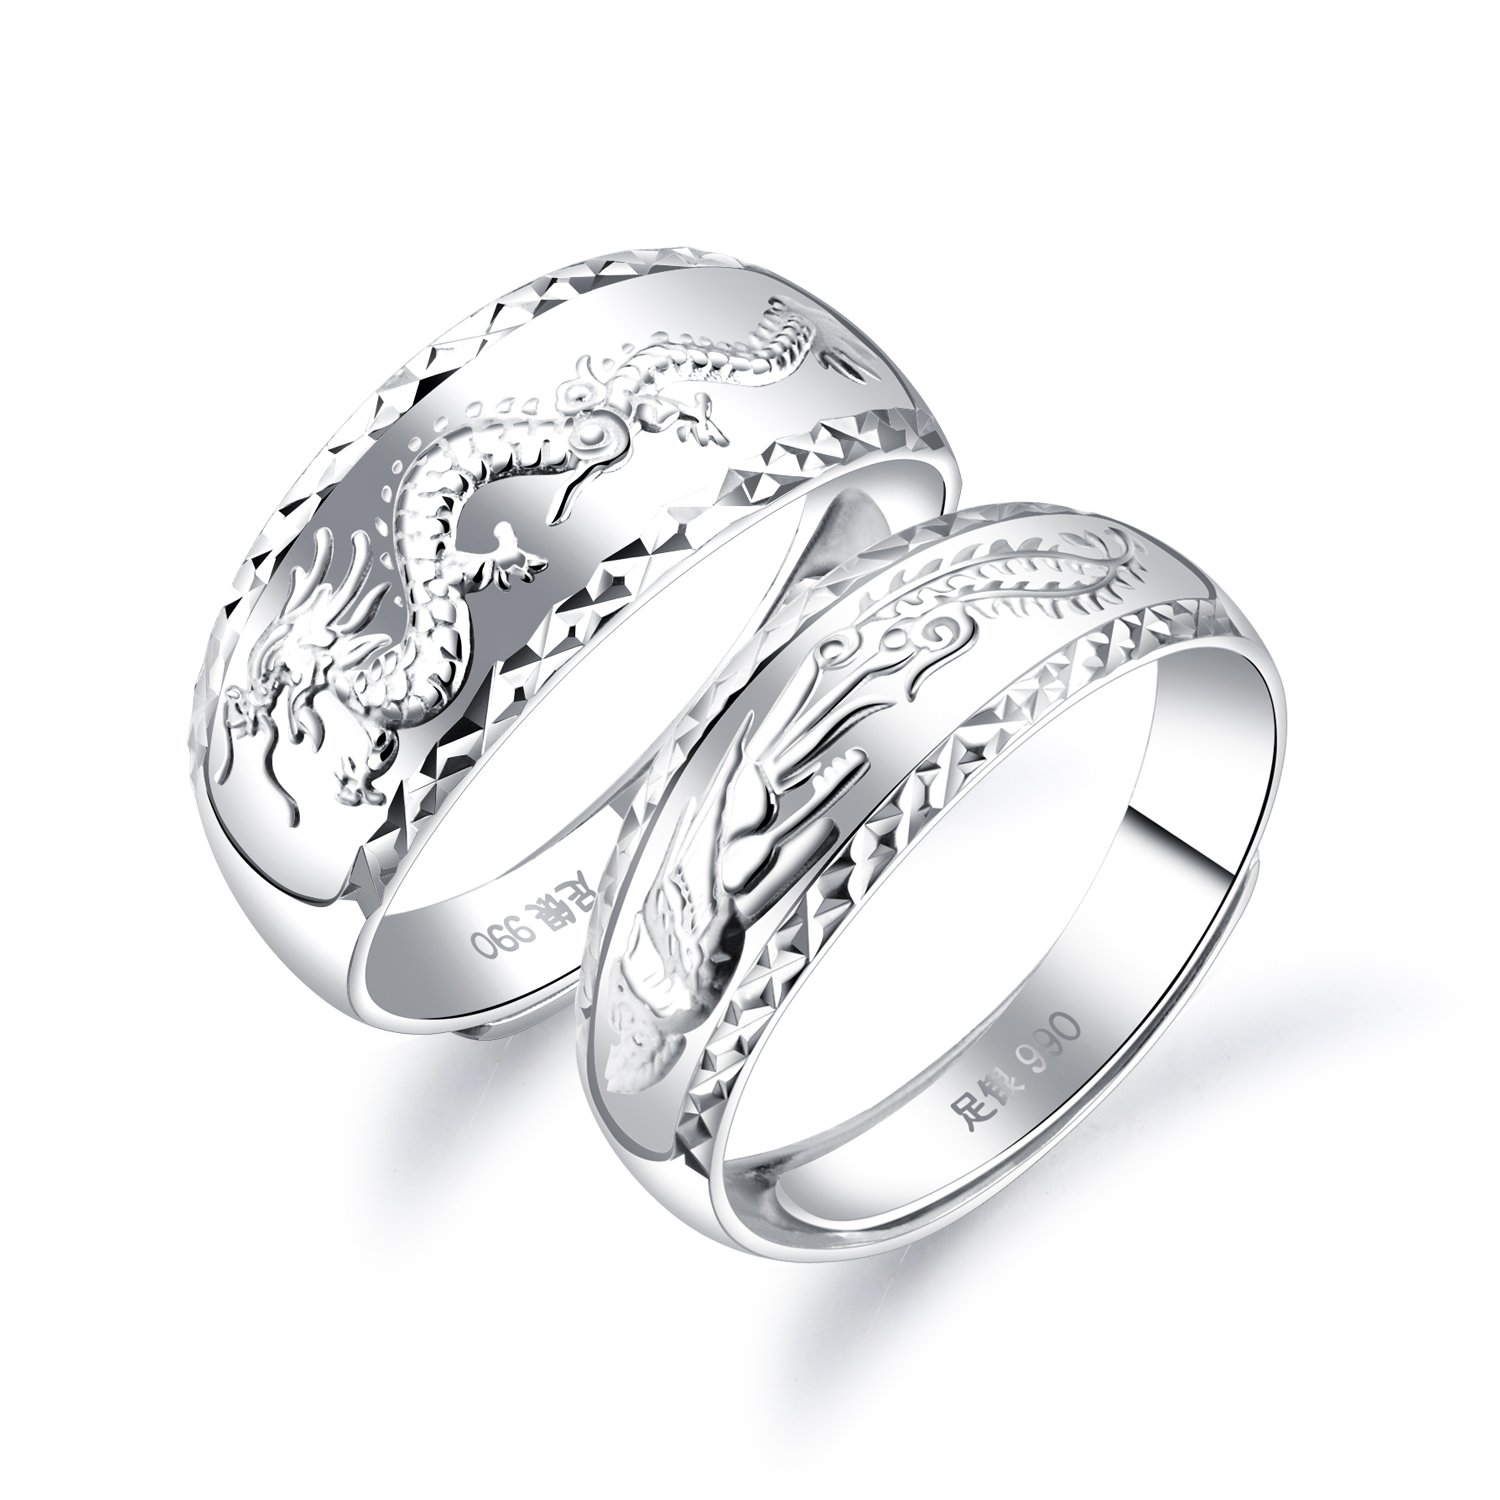 Fate Love 2 Pcs Sterling Silver Chinese Feature Lucky Dragon Phoenix Carved Couple Ring Wedding Band Set Adjustable Sizeamazon: Chinese Man Wedding Band At Websimilar.org